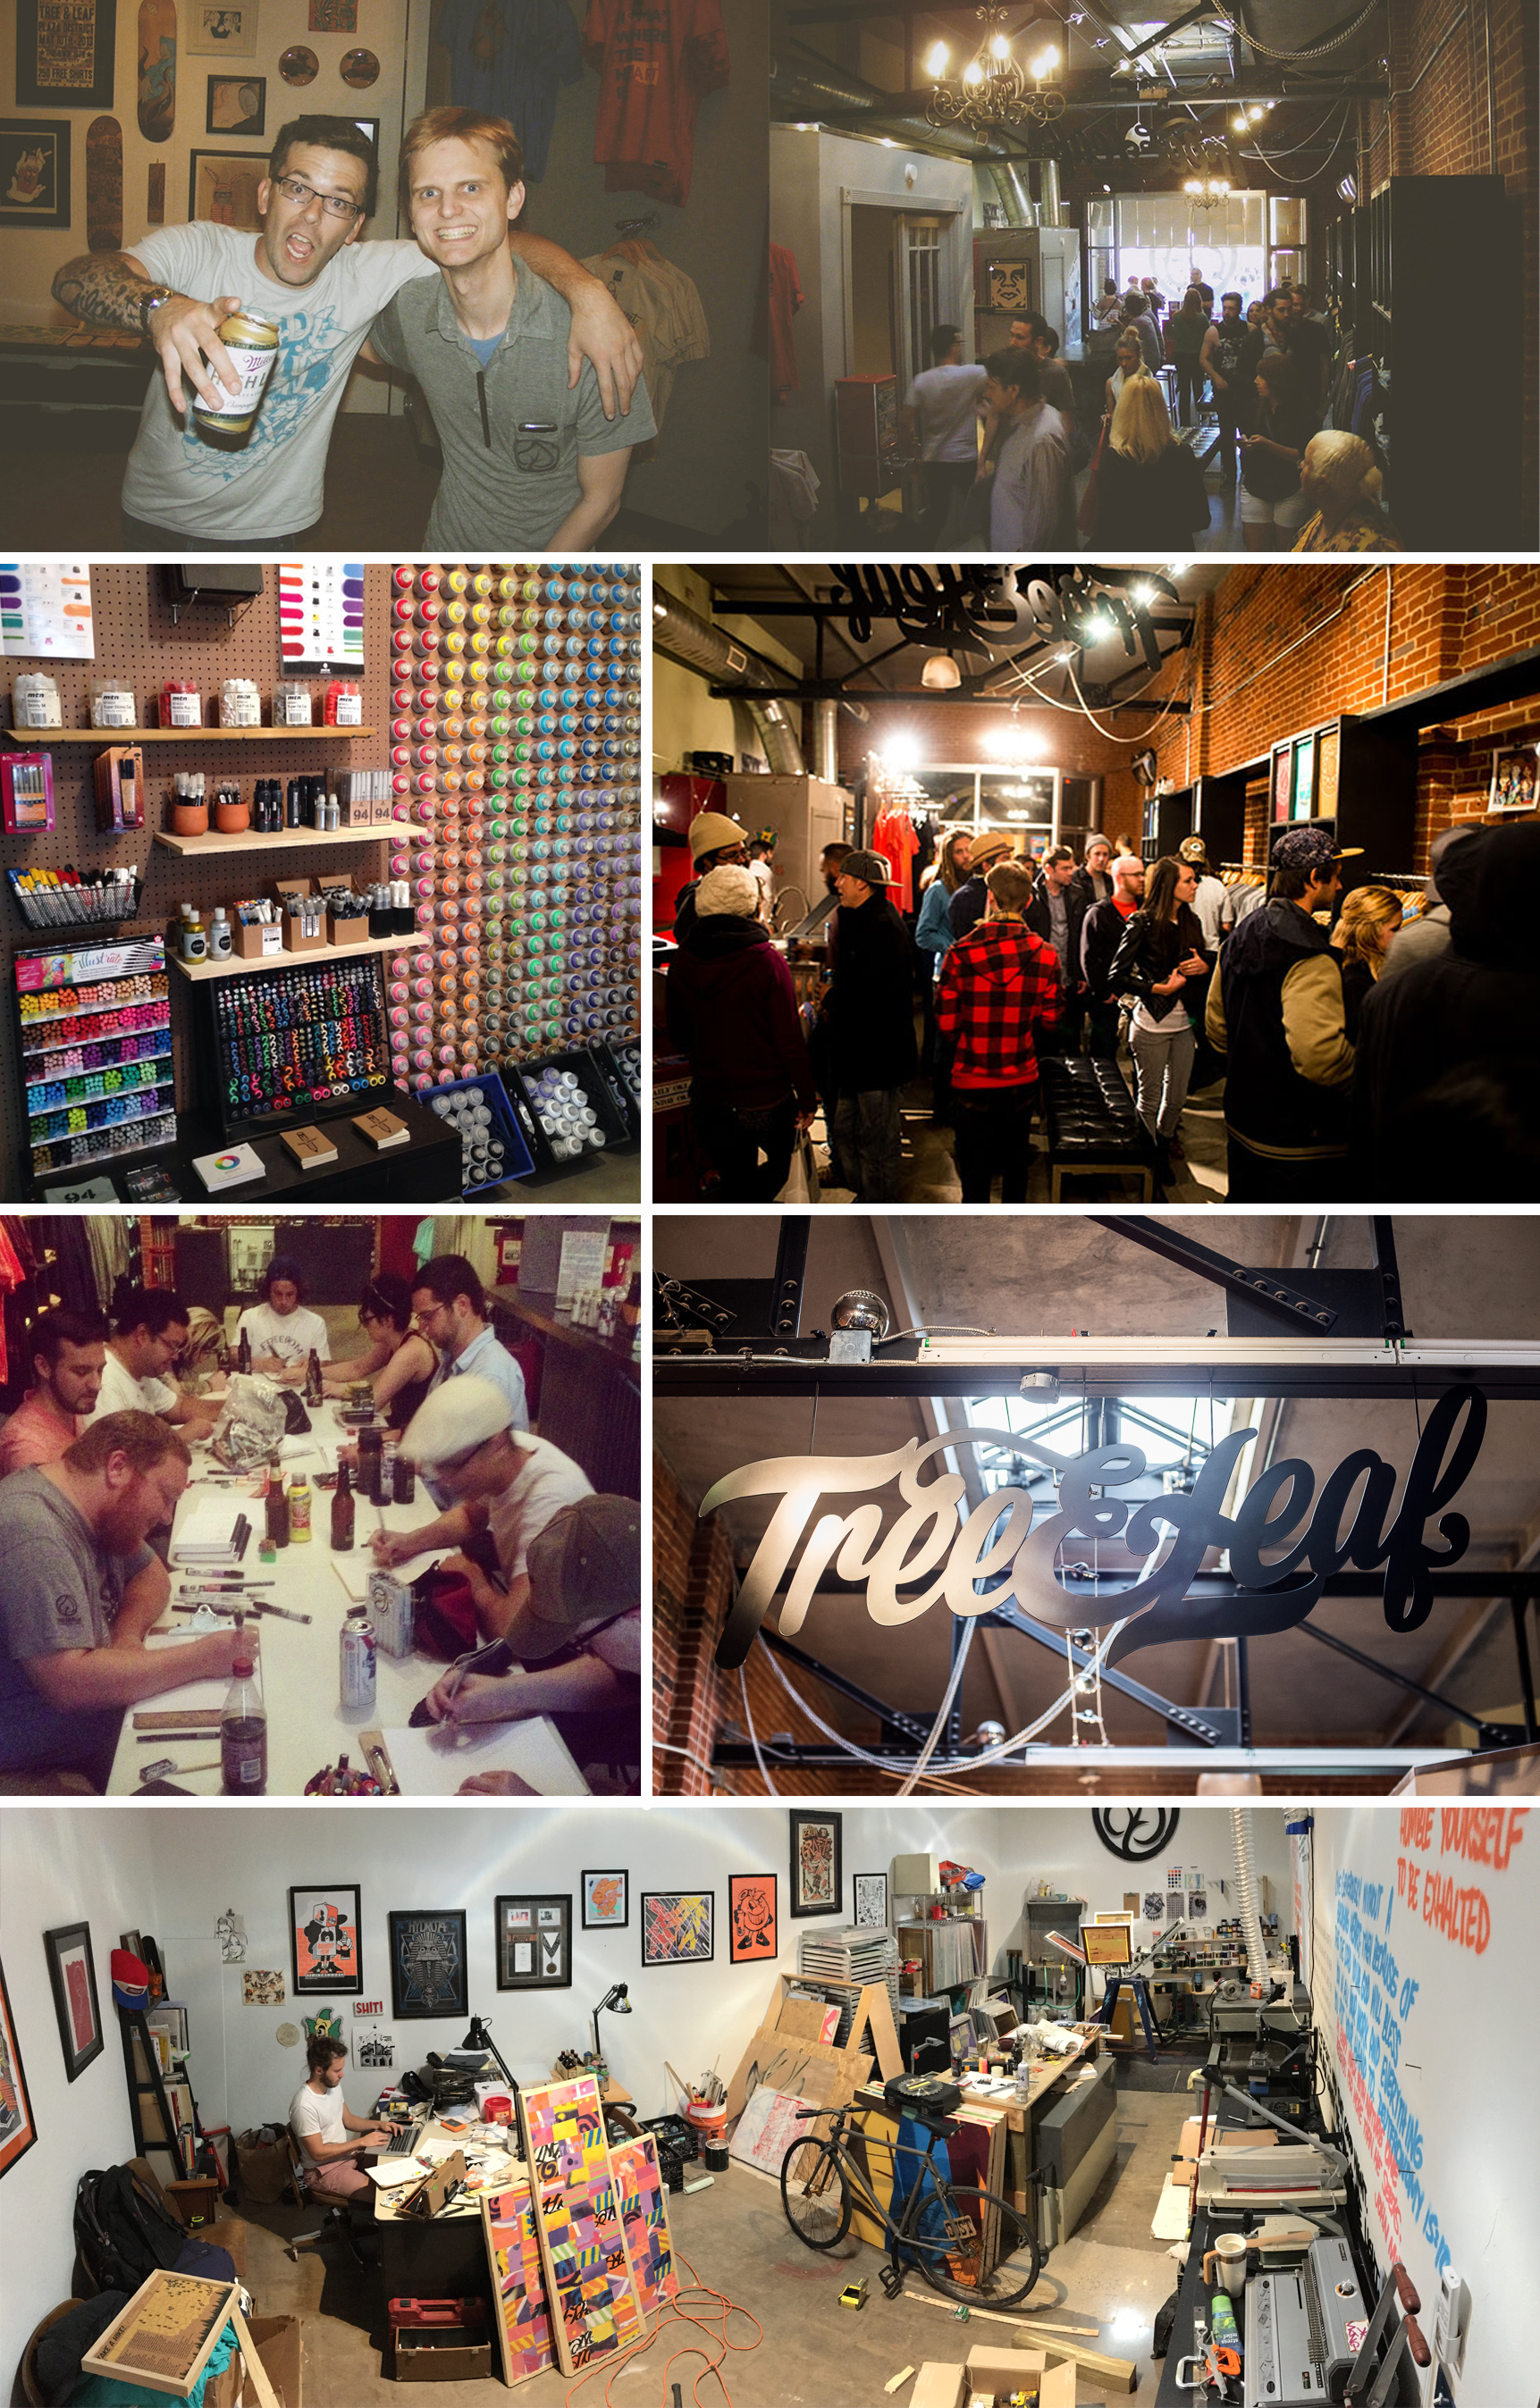 In 2013, we opened our store in the Plaza District. Our friends at DNA Galleries were expanding into the space next door and we knew we had to jump into their old space.We had spent a lot of time in the neighborhood and knew it was a fit for us. At that time I didn't know that I would be moving into the neighborhood and marrying the Plaza District Executive Director, Kristen Vails. Fate has a fun way of dealing it's cards.  It's been 3 years since our move into the Plaza and I think it was the best business move we ever made. I have a heart for this neighborhood like no other. I love this community sometimes until it hurts. Kristen and I have invested our blood, sweat, and tears into 16th St. and I don't foresee us leaving it any time soon.